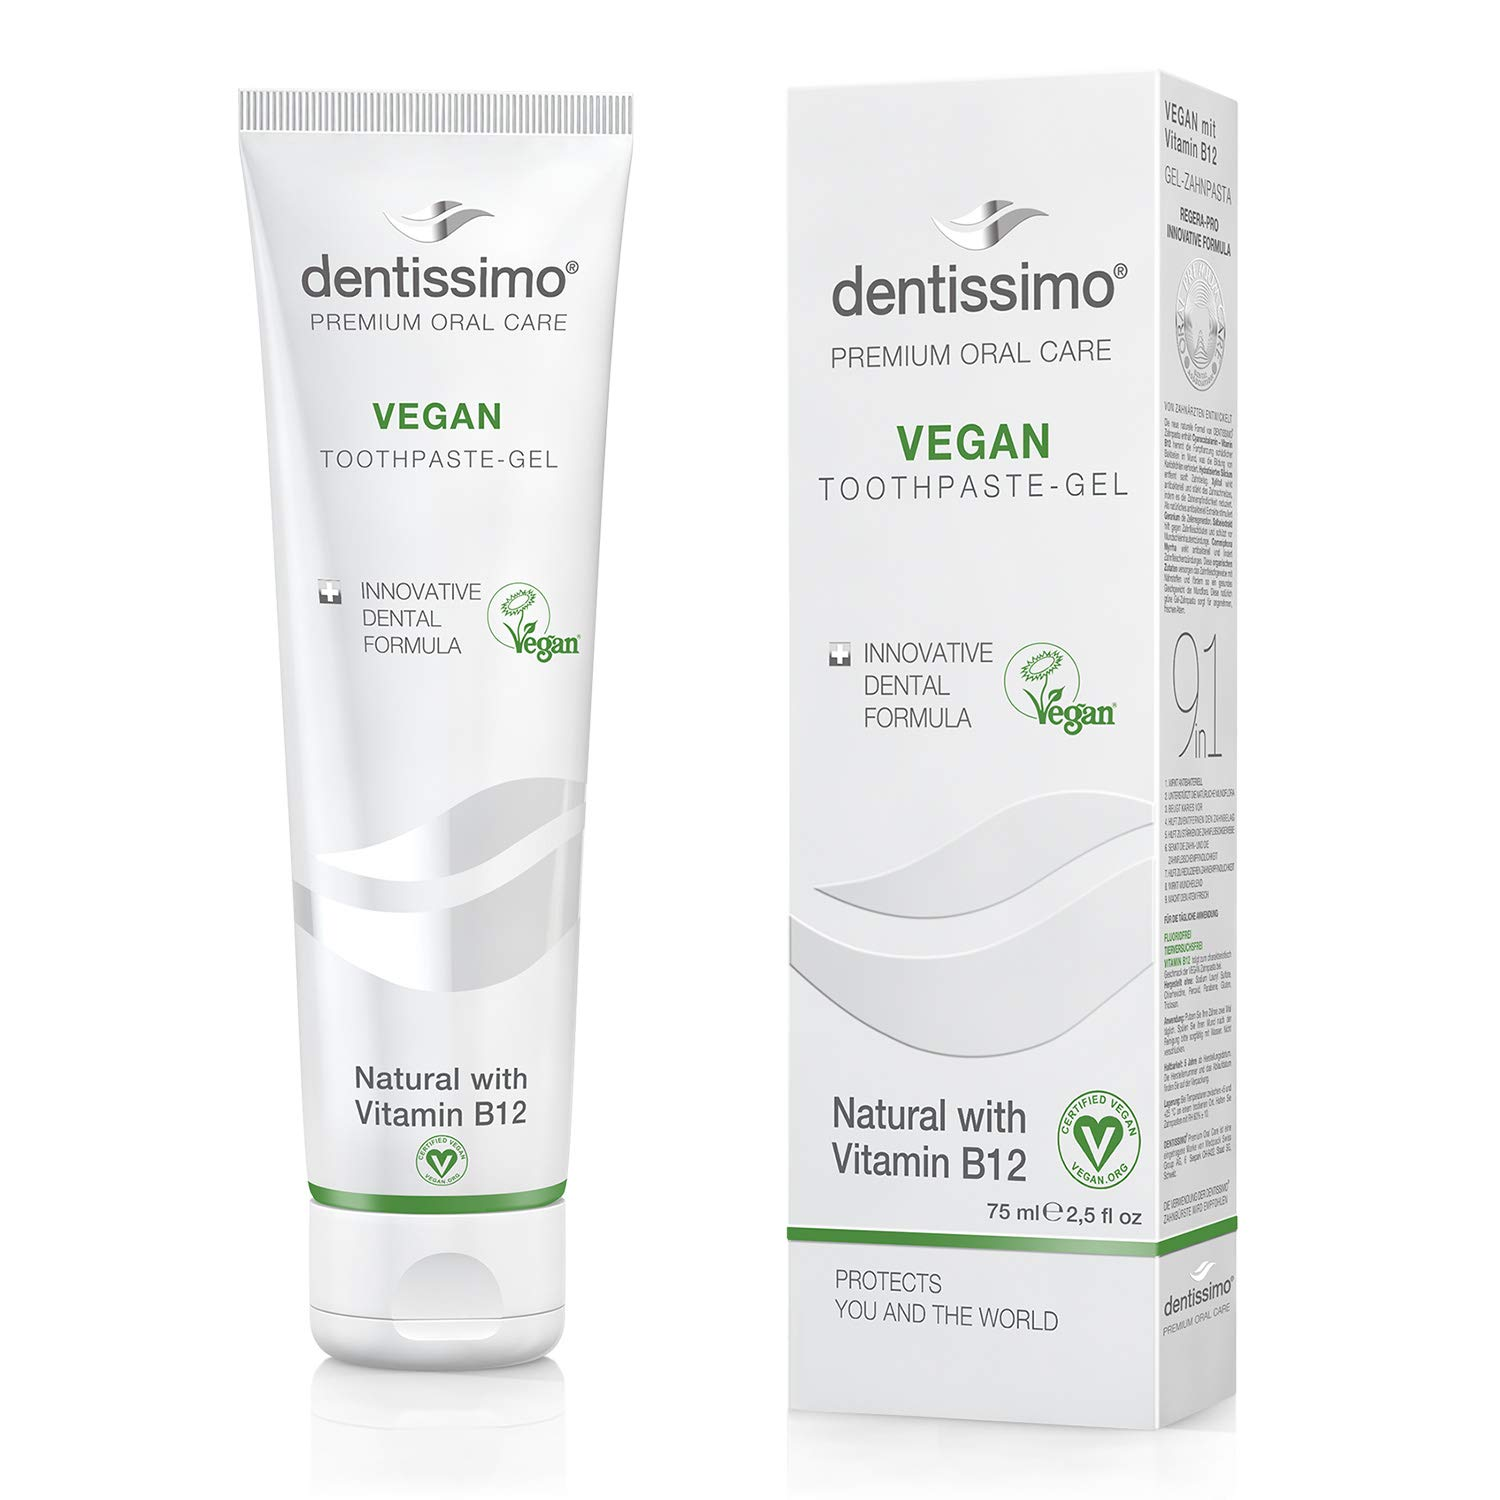 Medpack Dentissimo Swiss Biodent Toothpaste, Vegan With Vitamin B12, 2.5 Fluid Ounce